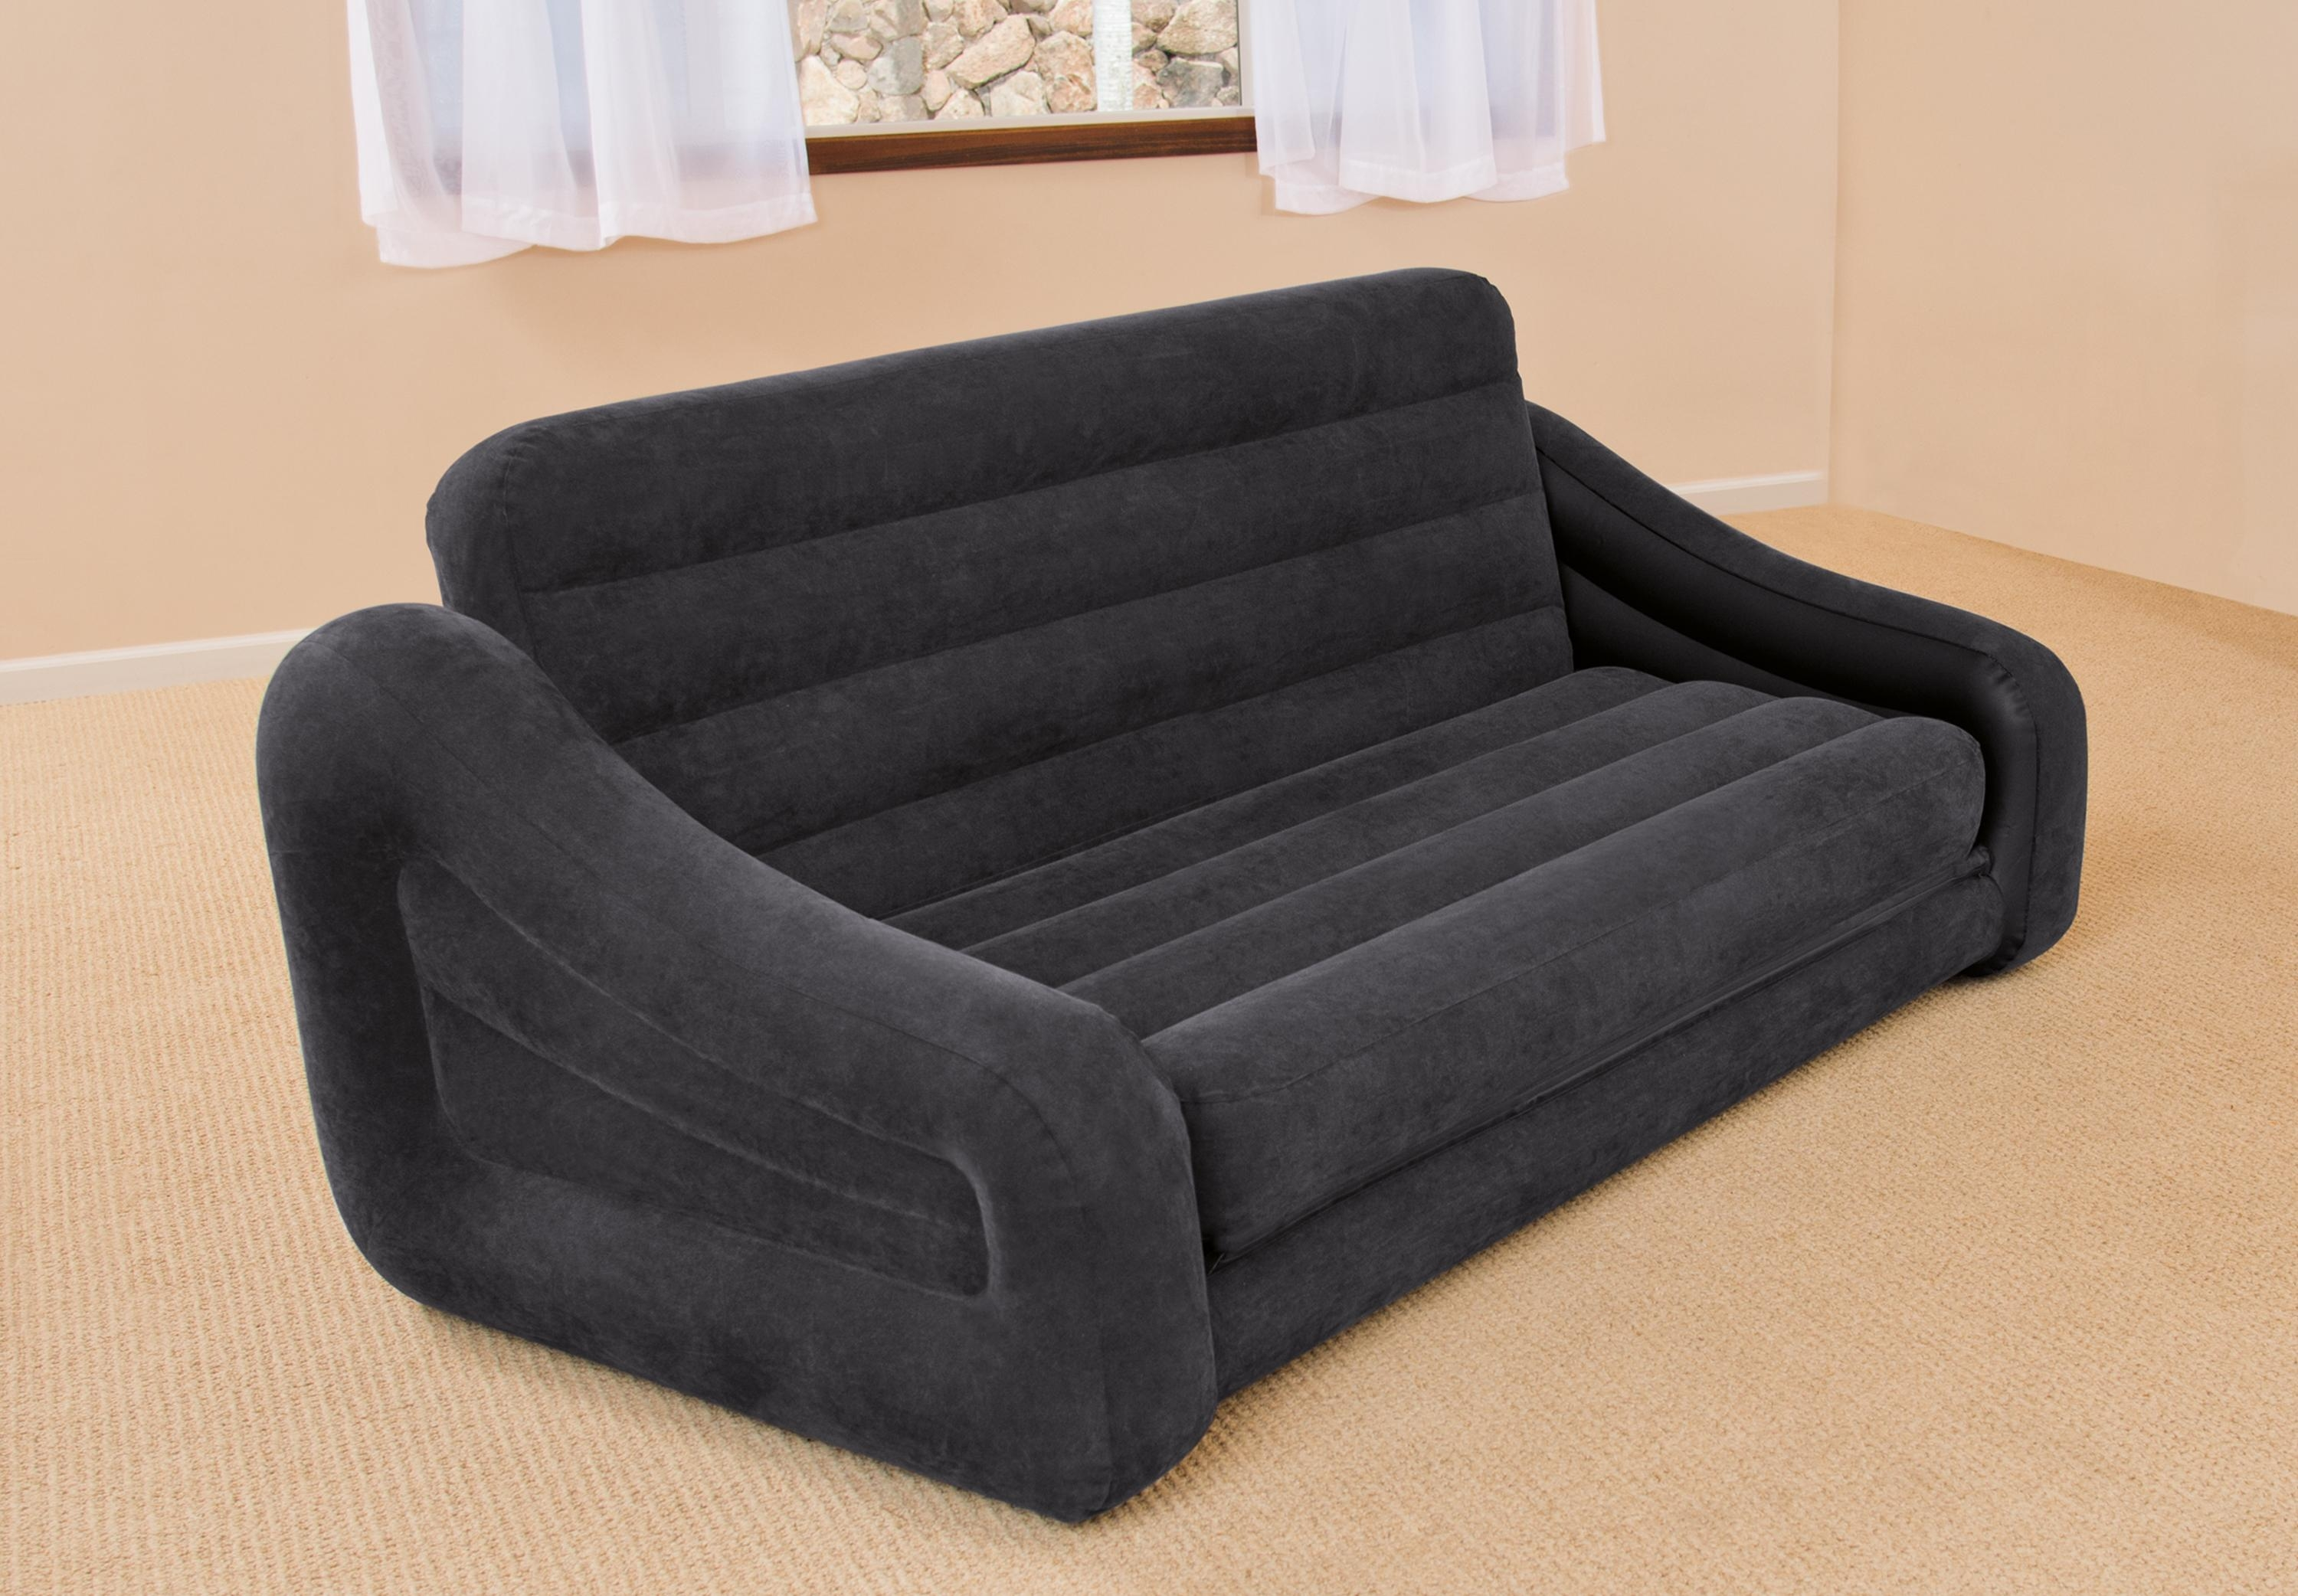 air mattress or sofa bed modern canada 20 43 choices of intex beds ideas